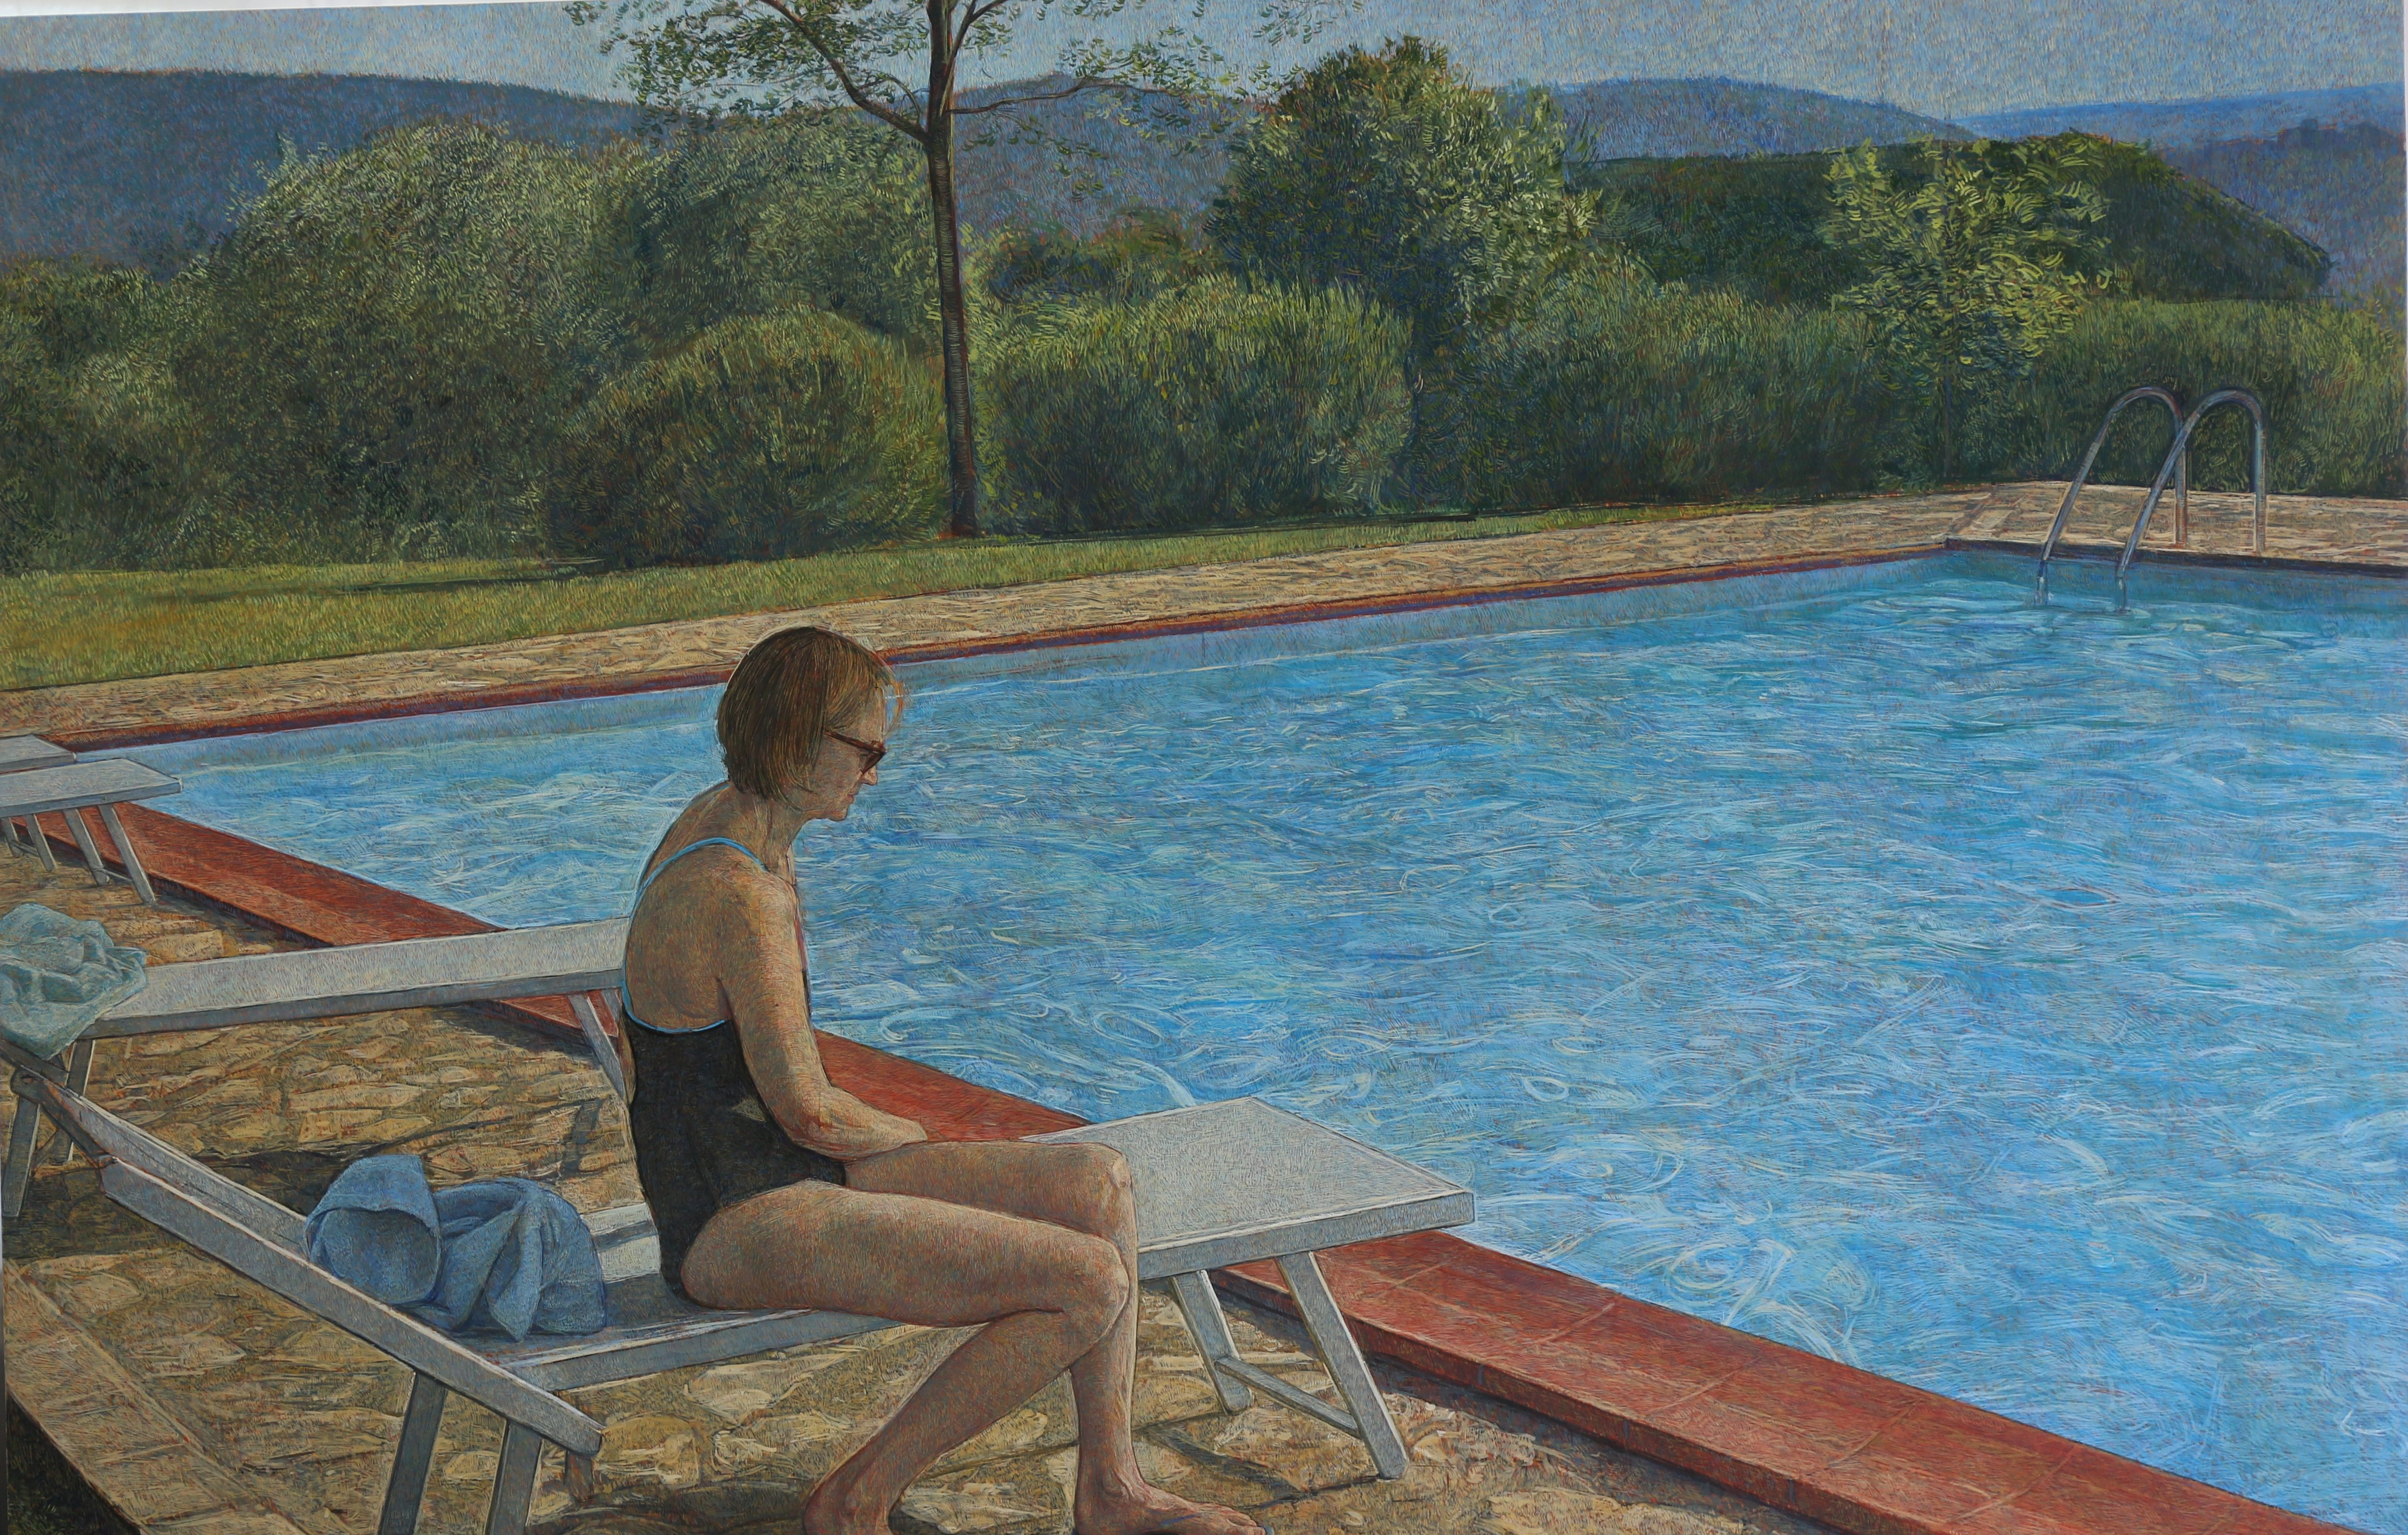 Antony_Williams_swimming-pool-with-figure, 42.5 x 57 inches